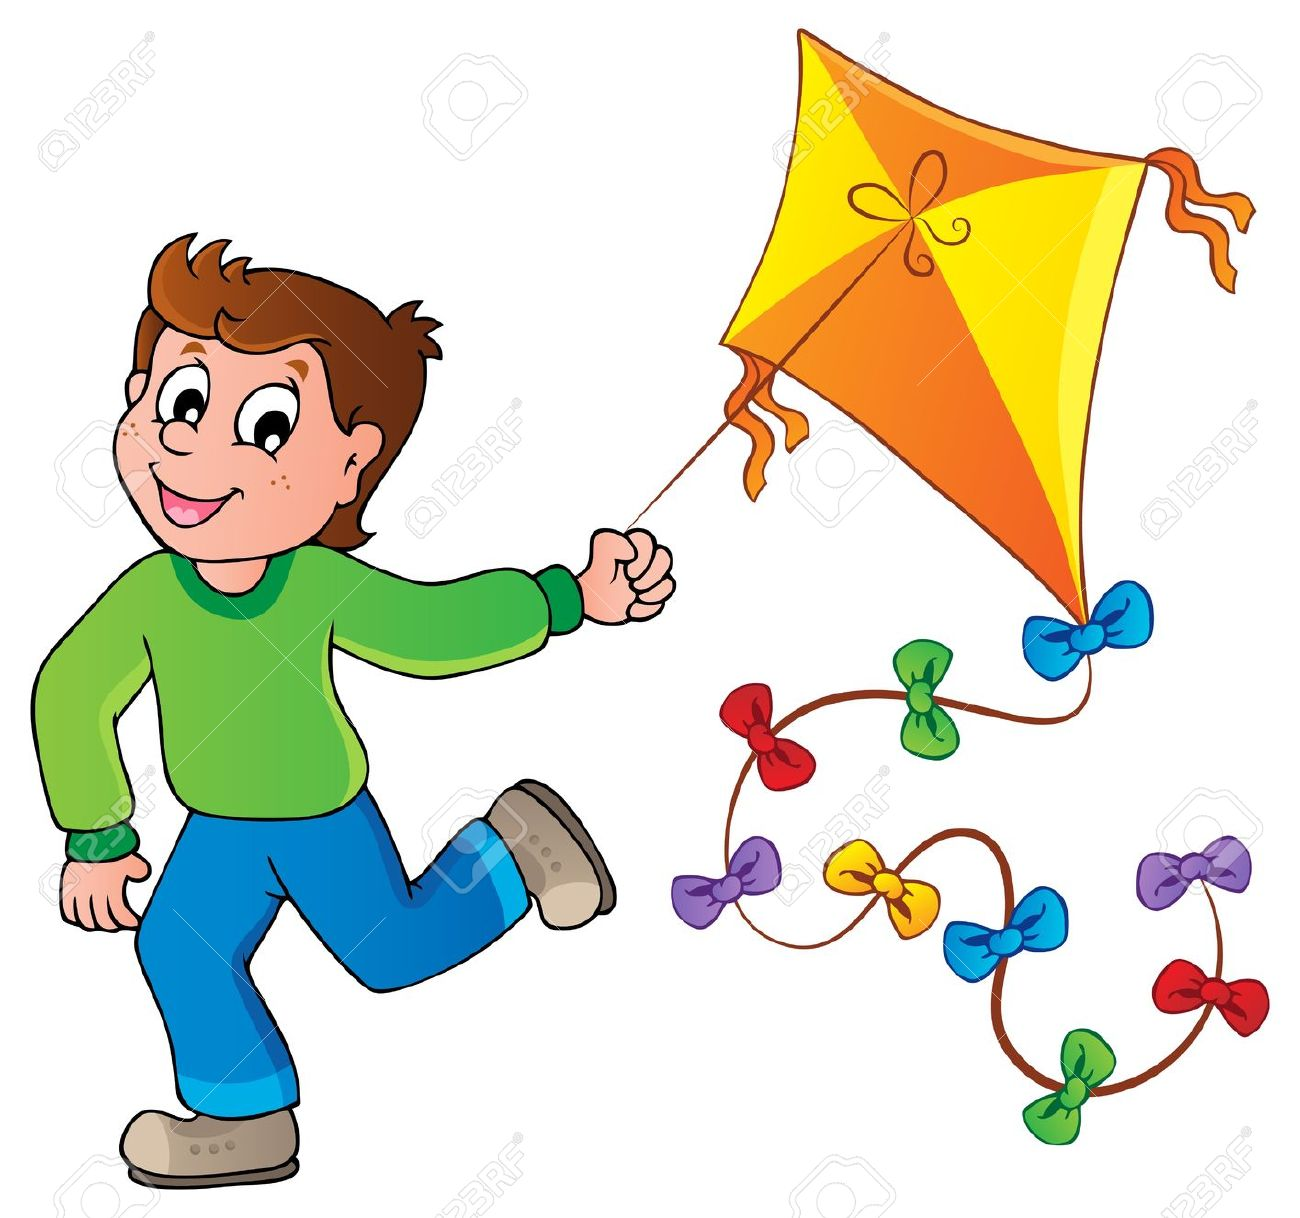 Flying kite clipart - Clipground